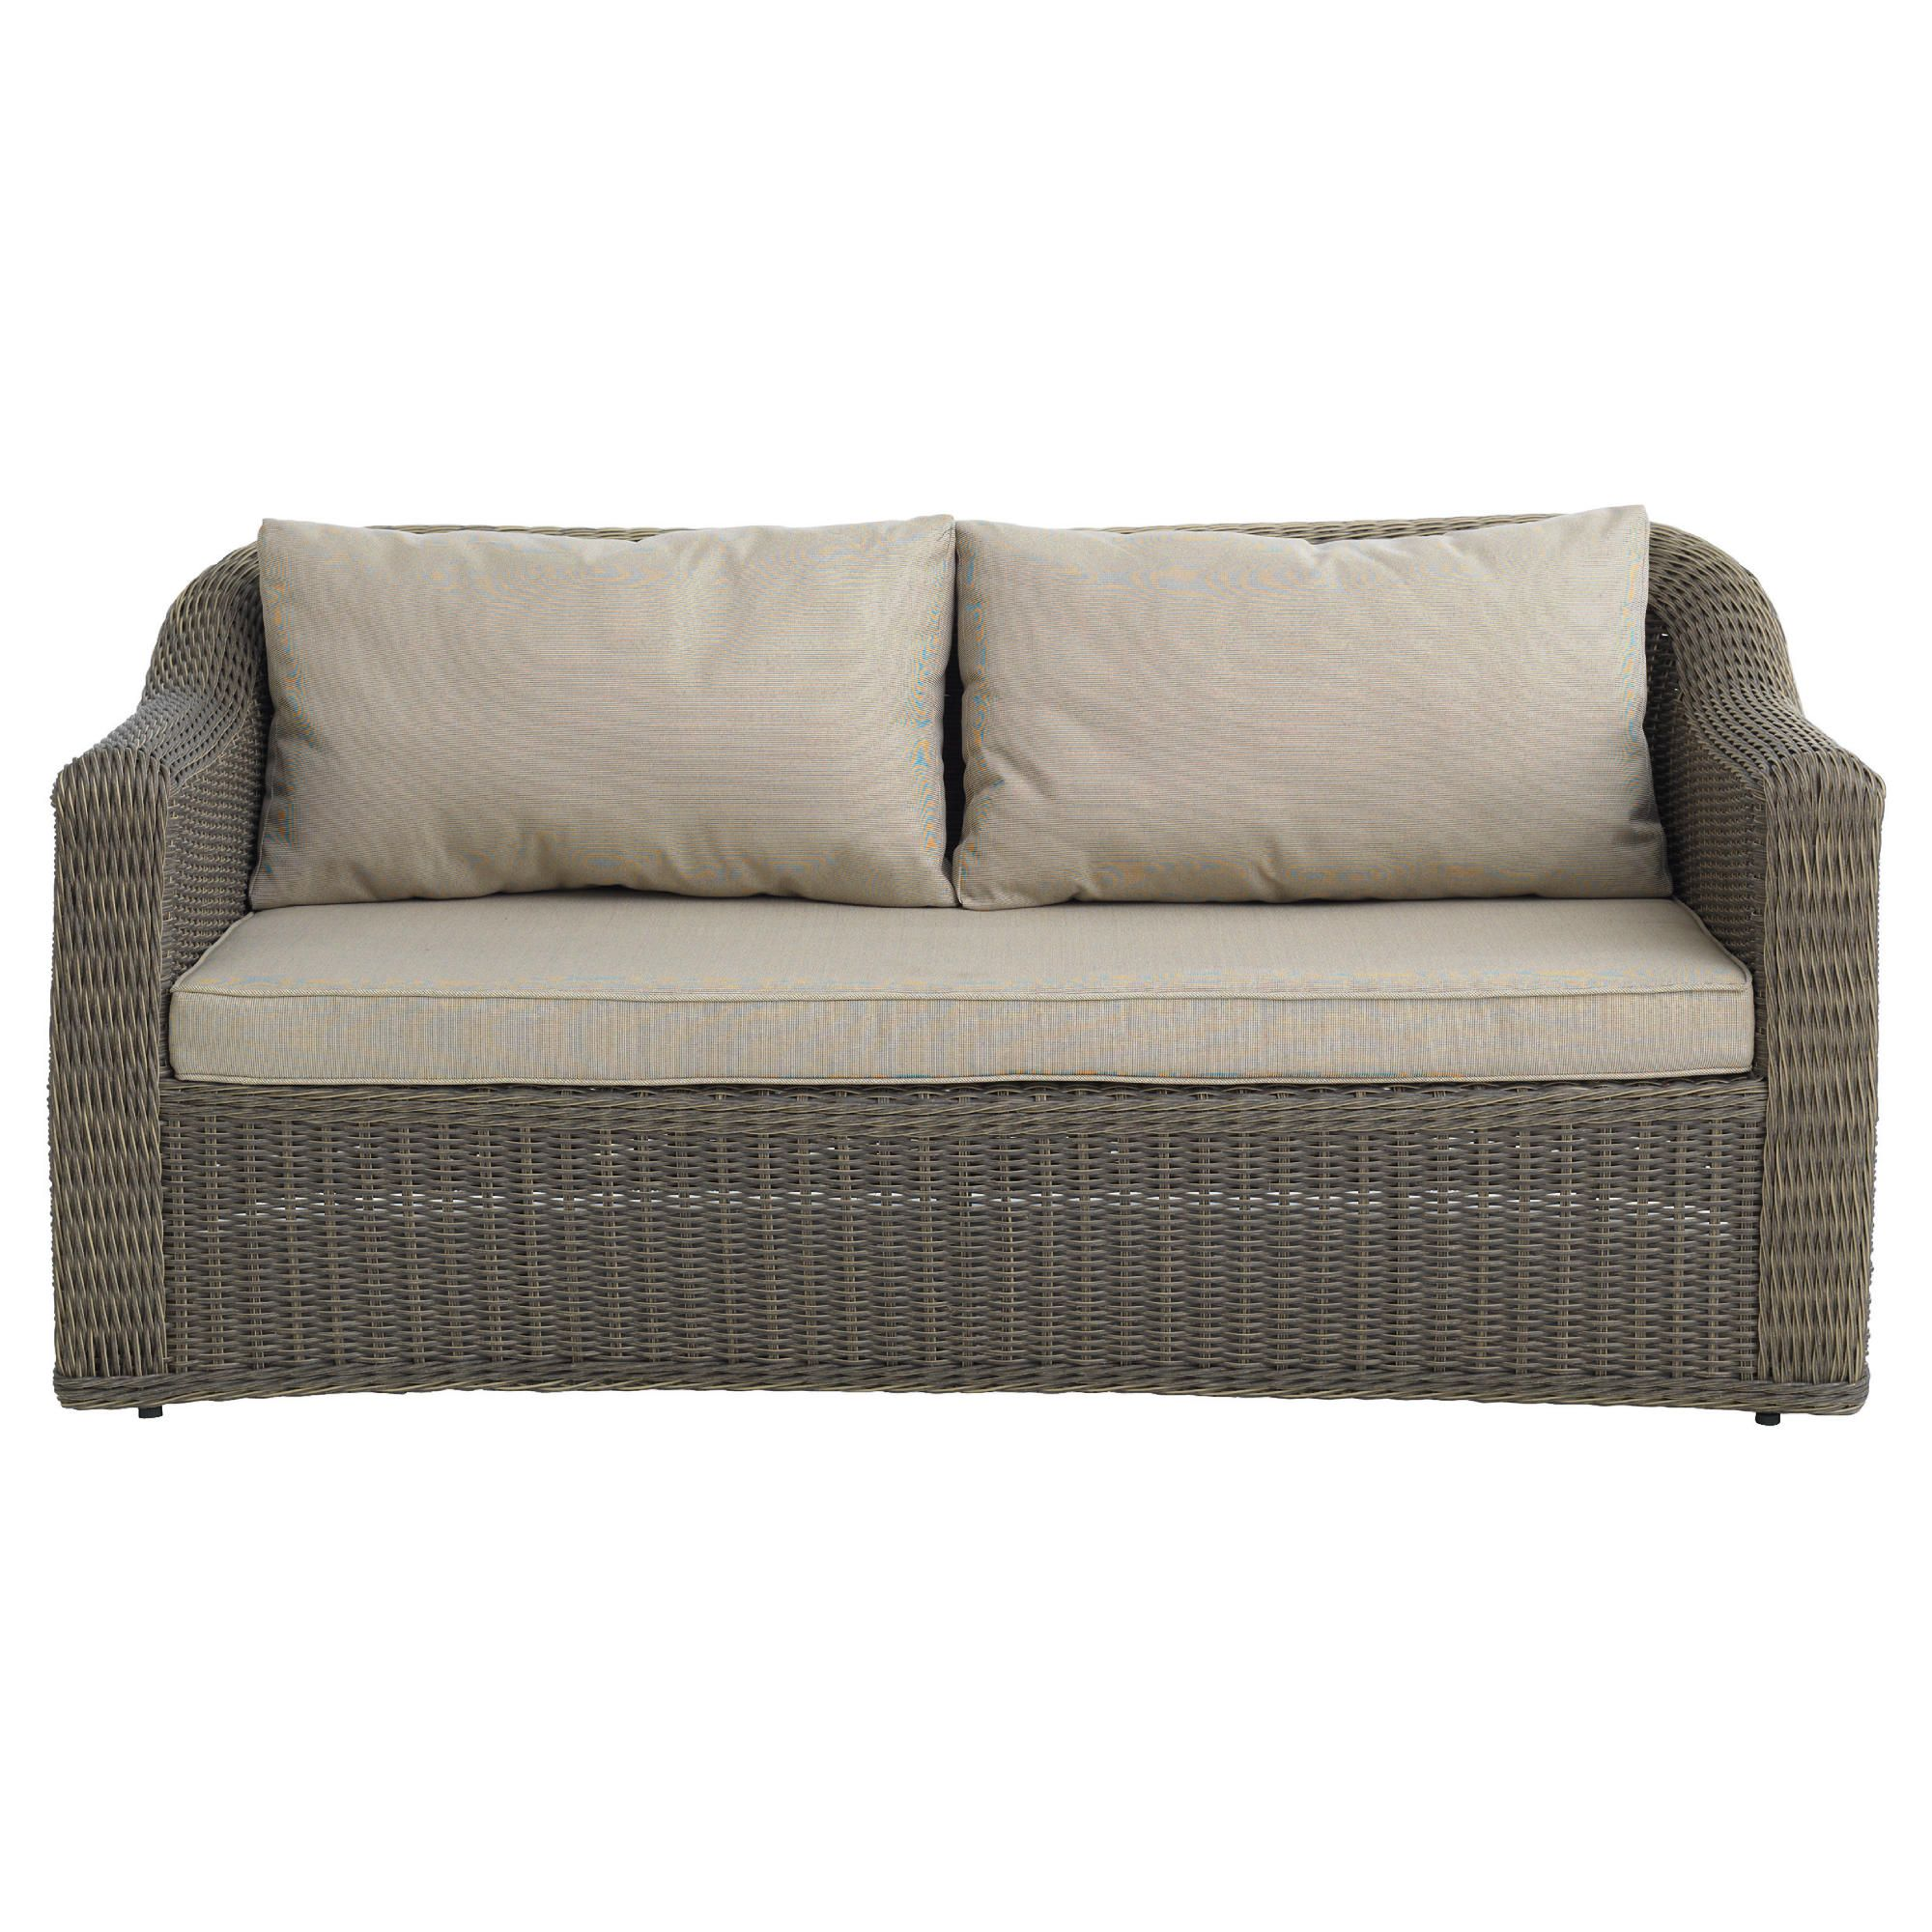 Albany 2 Seat Sofa & Cushions at Tesco Direct